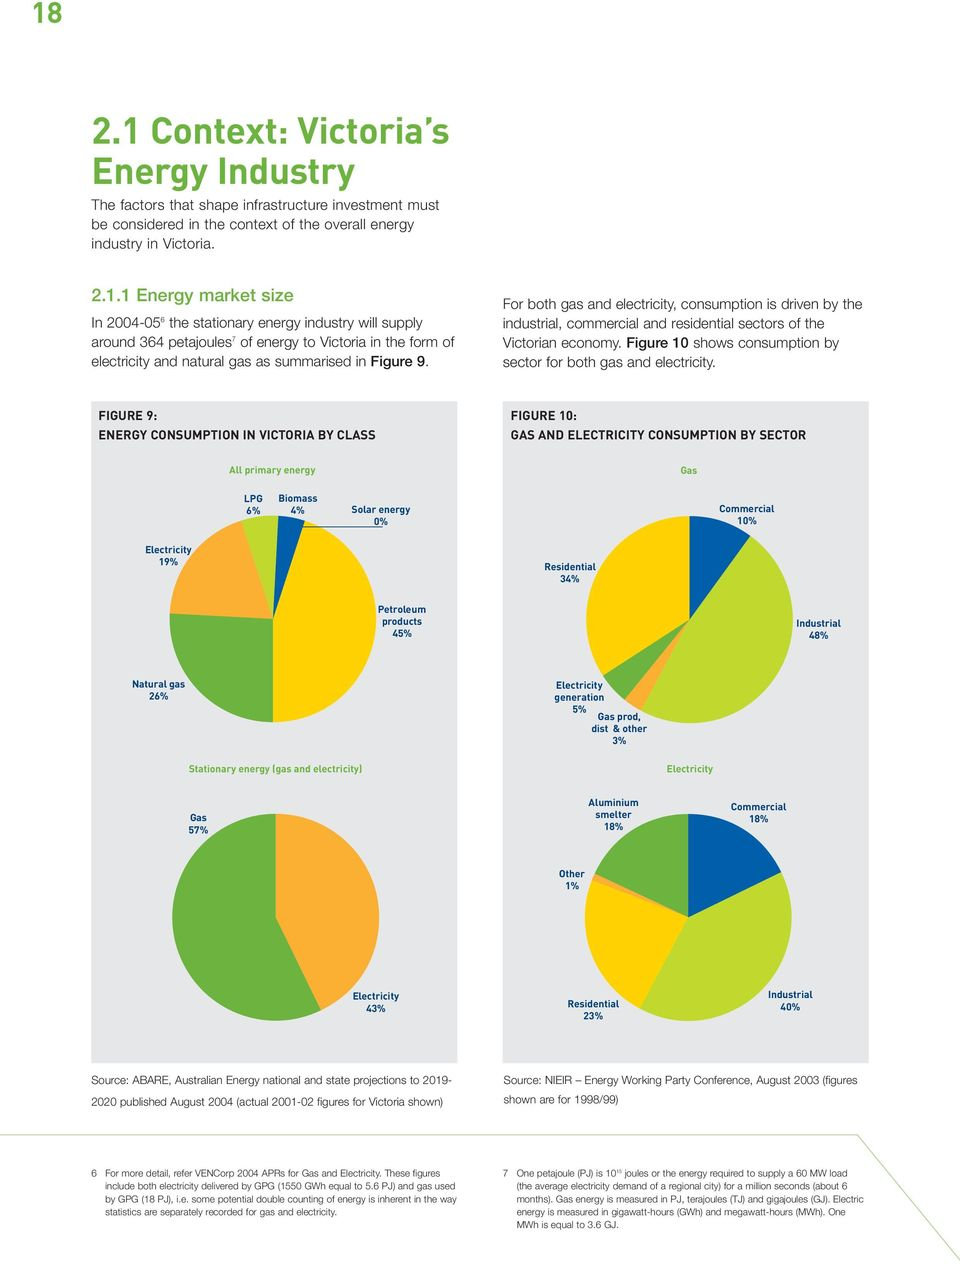 FIGURE 9: ENERGY CONSUMPTION IN VICTORIA BY CLASS FIGURE 10: GAS AND ELECTRICITY CONSUMPTION BY SECTOR All primary energy Stationary energy (gas and electricity) Gas LPG Biomass 6% 4% Solar energy 0%